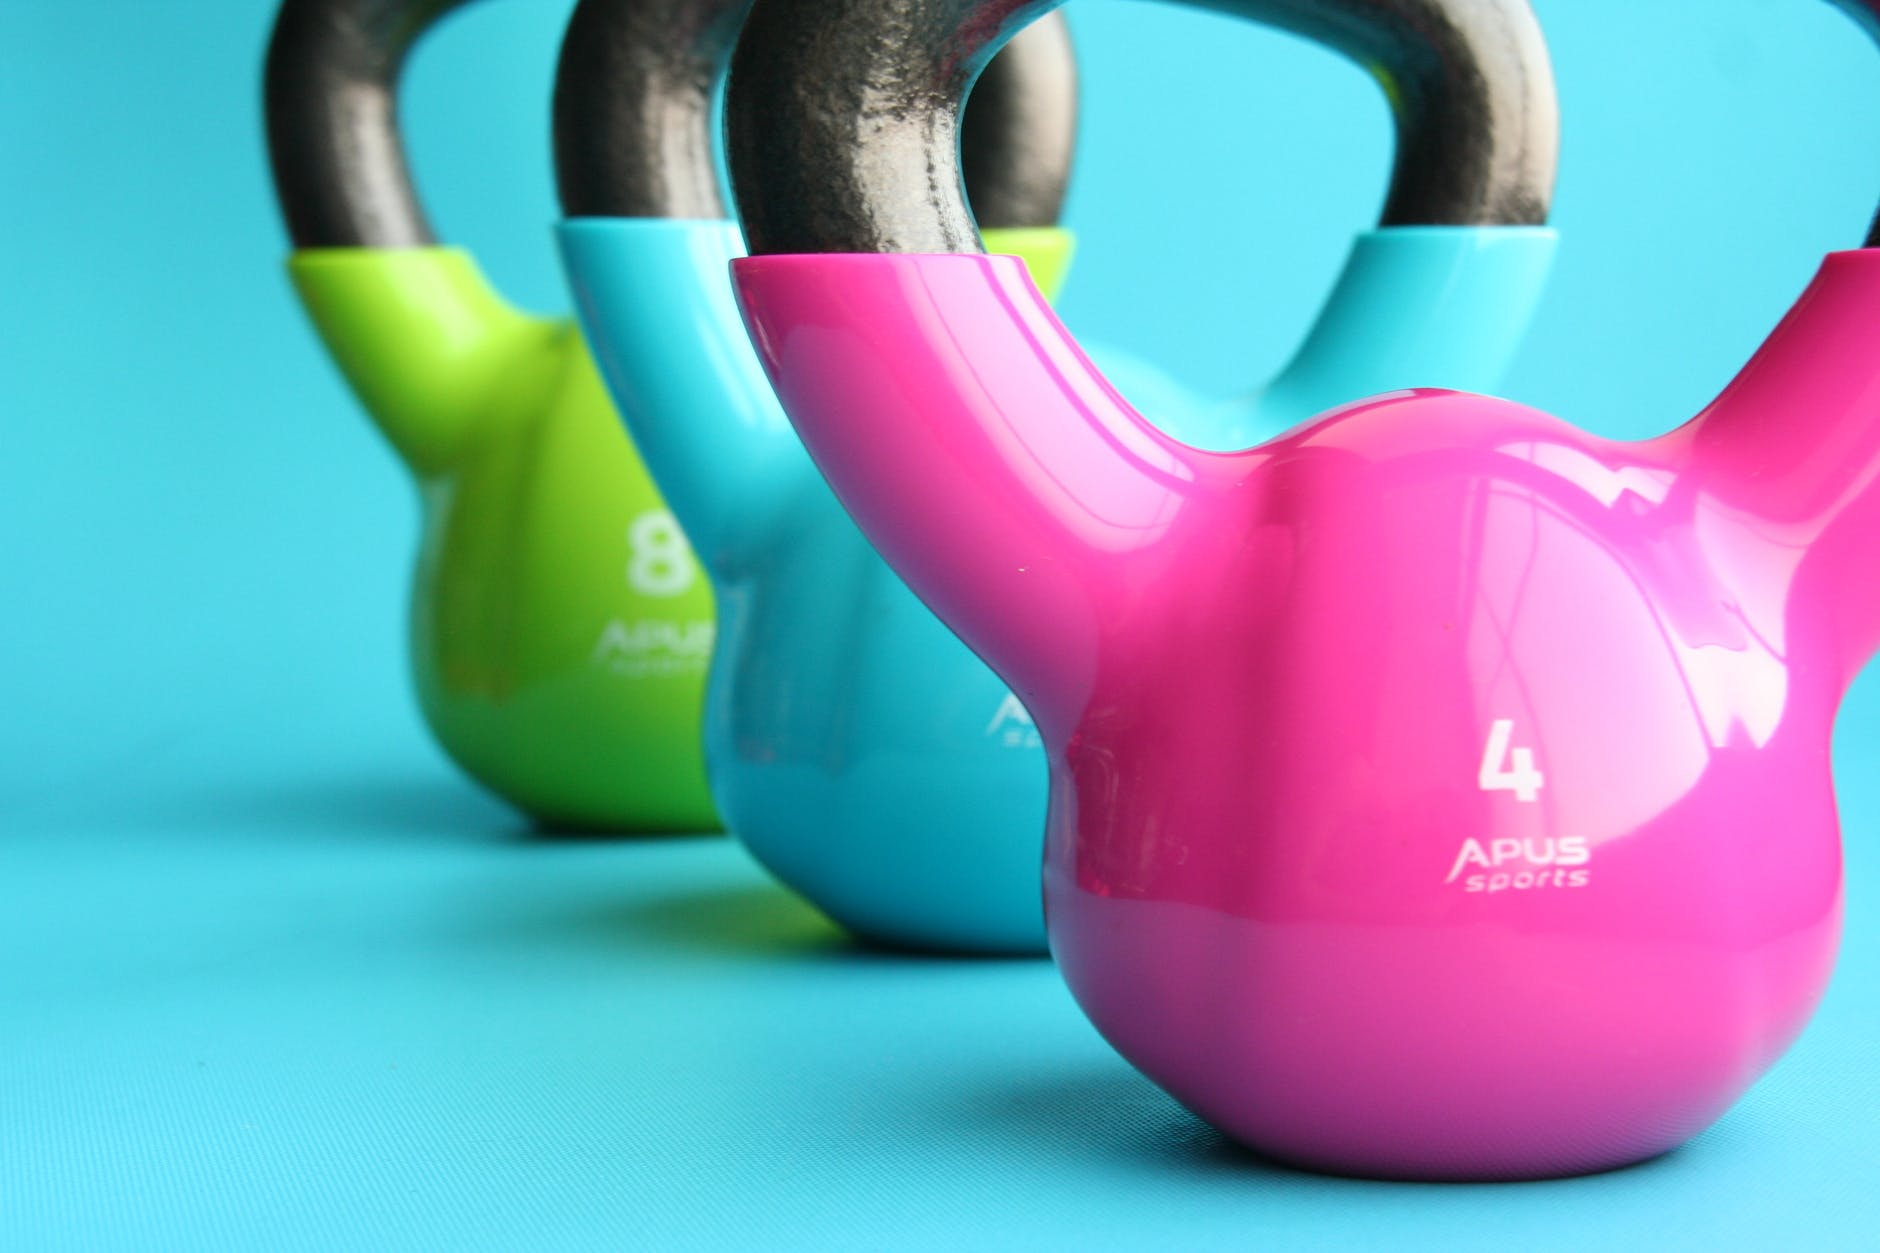 pink, bule and green kettle ball for workouts